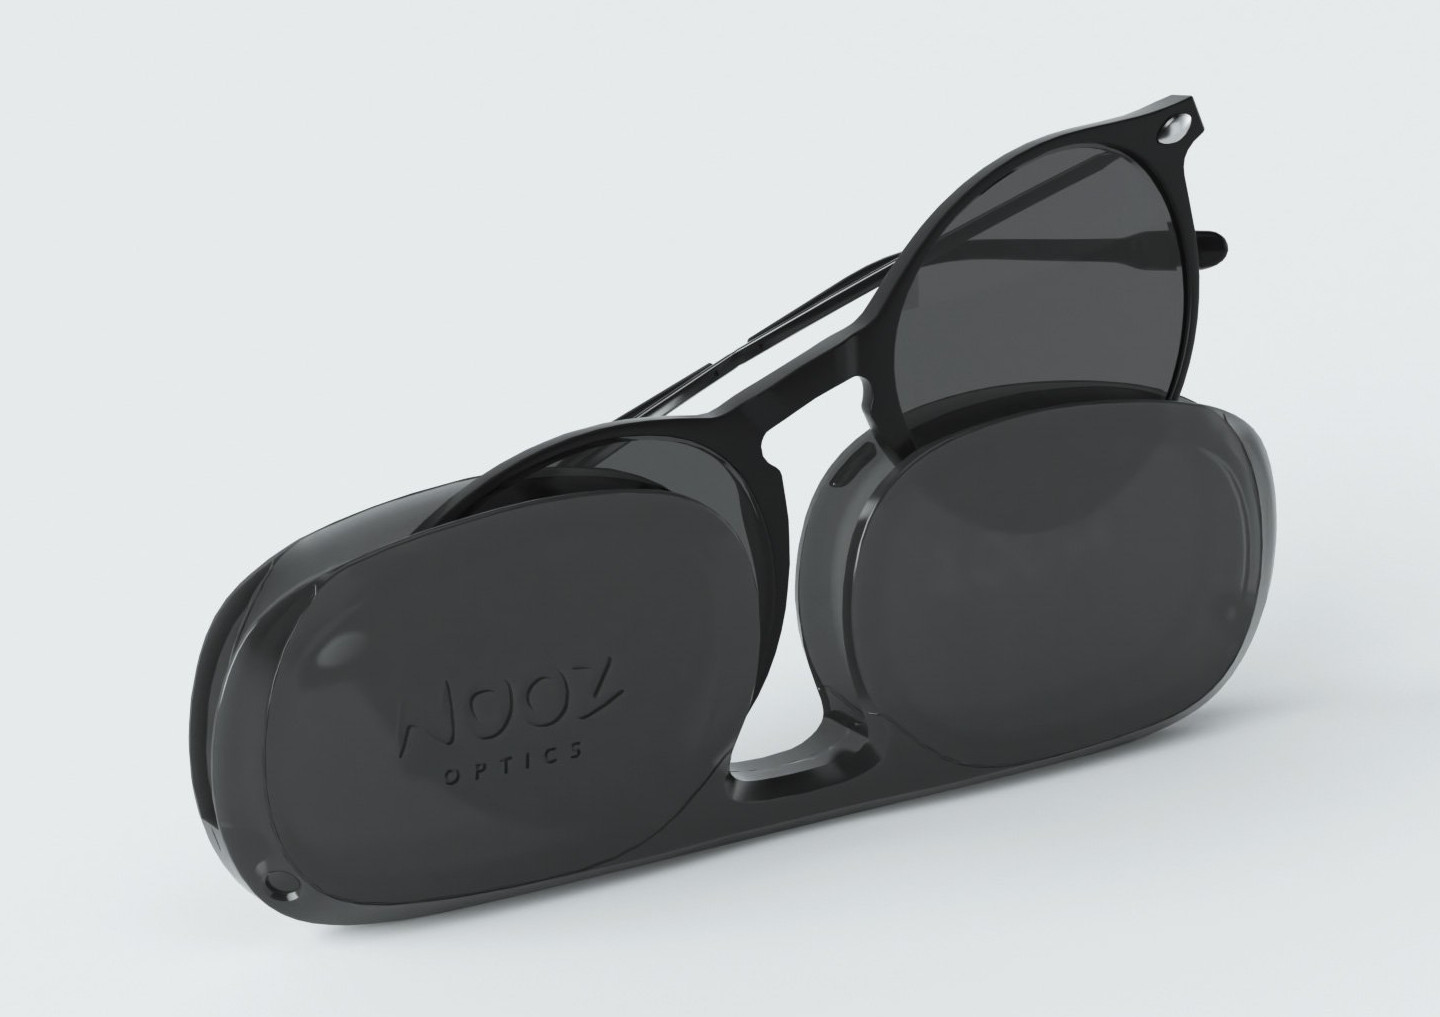 Oval shaped readers to keep in pocket or purse.